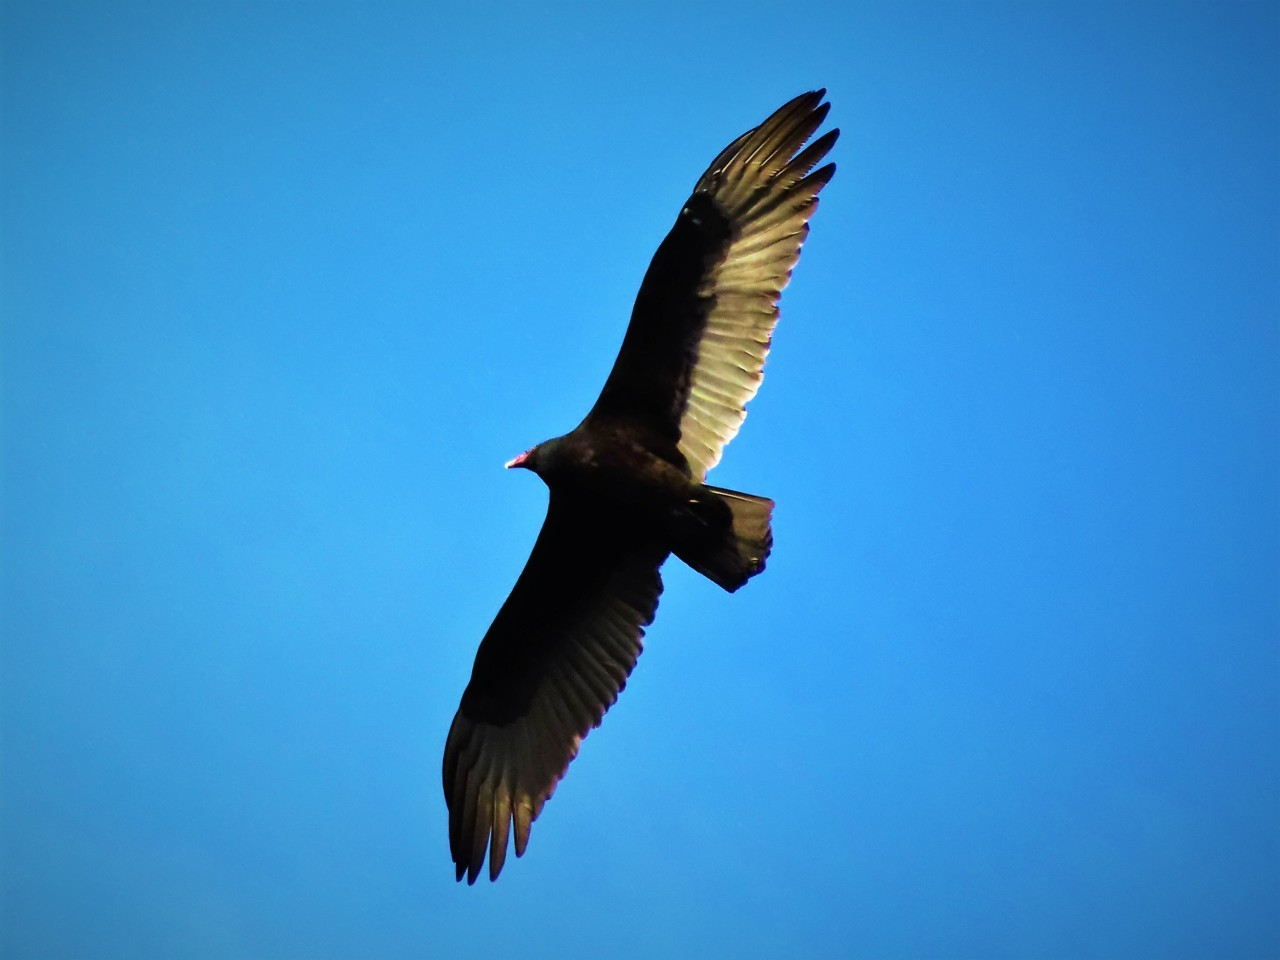 It's tough to get a good picture of a Turkey Vulture when they're riding the thermals overhead, but this is one of the clearer ones I've gotten. I really love them, from a distance anyway ^^> #turkey vulture#birds#birdwatching#nature#photography #Taken December 30th 2020  #Posting this in honor of the resident vulture who BIT ME yesterday  #she just straight up CHOMPED on me when I looked away for a moment